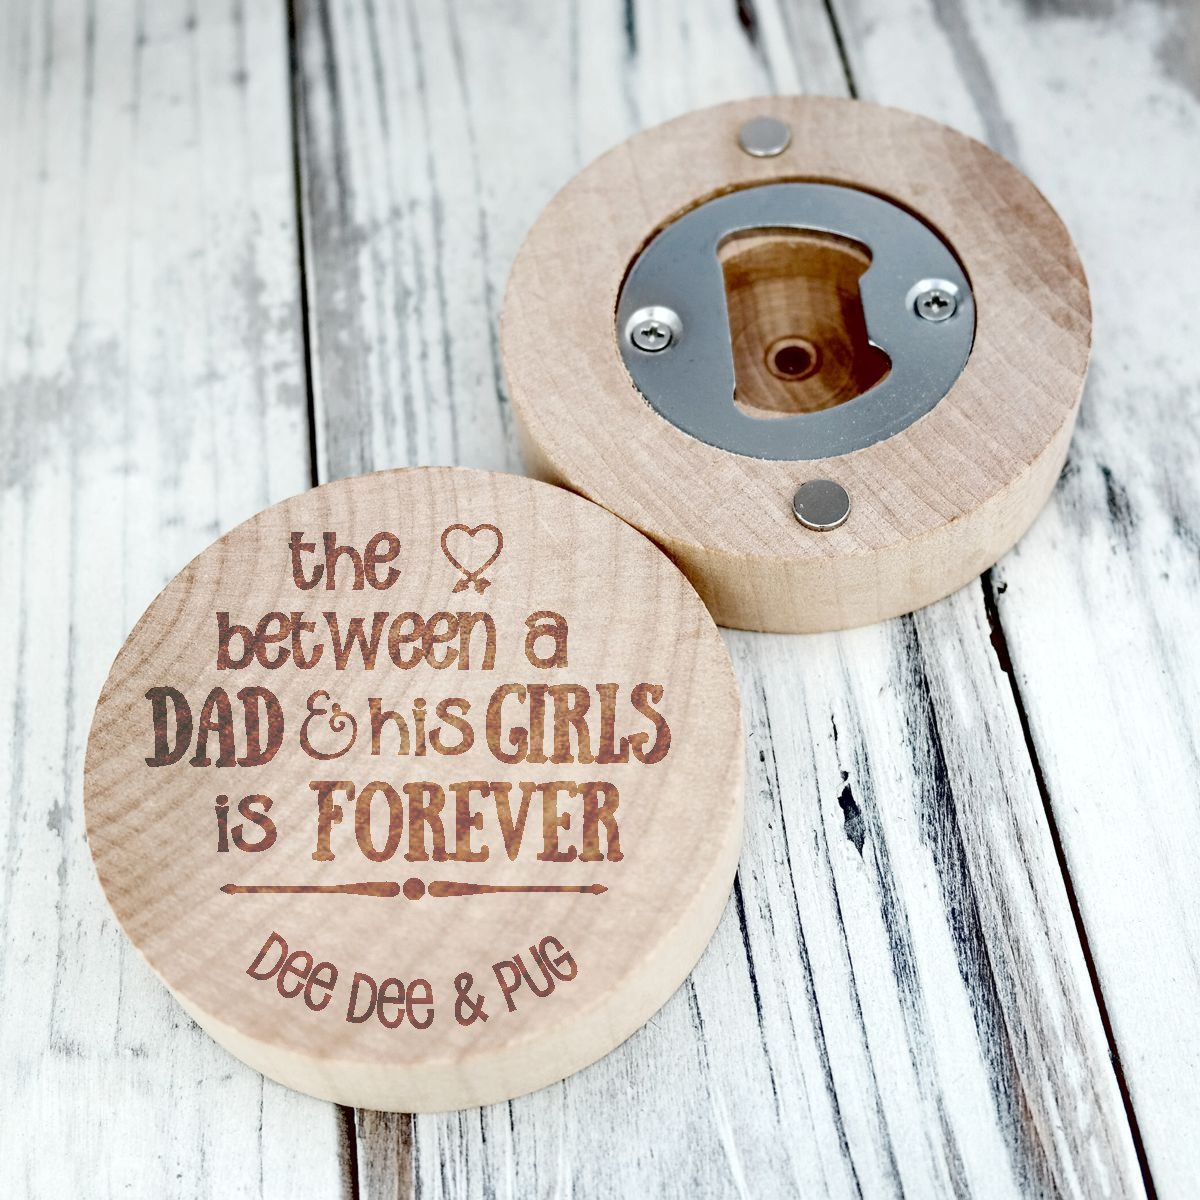 Need #fathersdaygift ideas? #kennebug has you covered. We have 1000s of #giftsfordad this #fathersday #comecheckusout! #madeinmichigan #dadgifts #dadofgirls #girldadpic.twitter.com/eddczBdQ7H